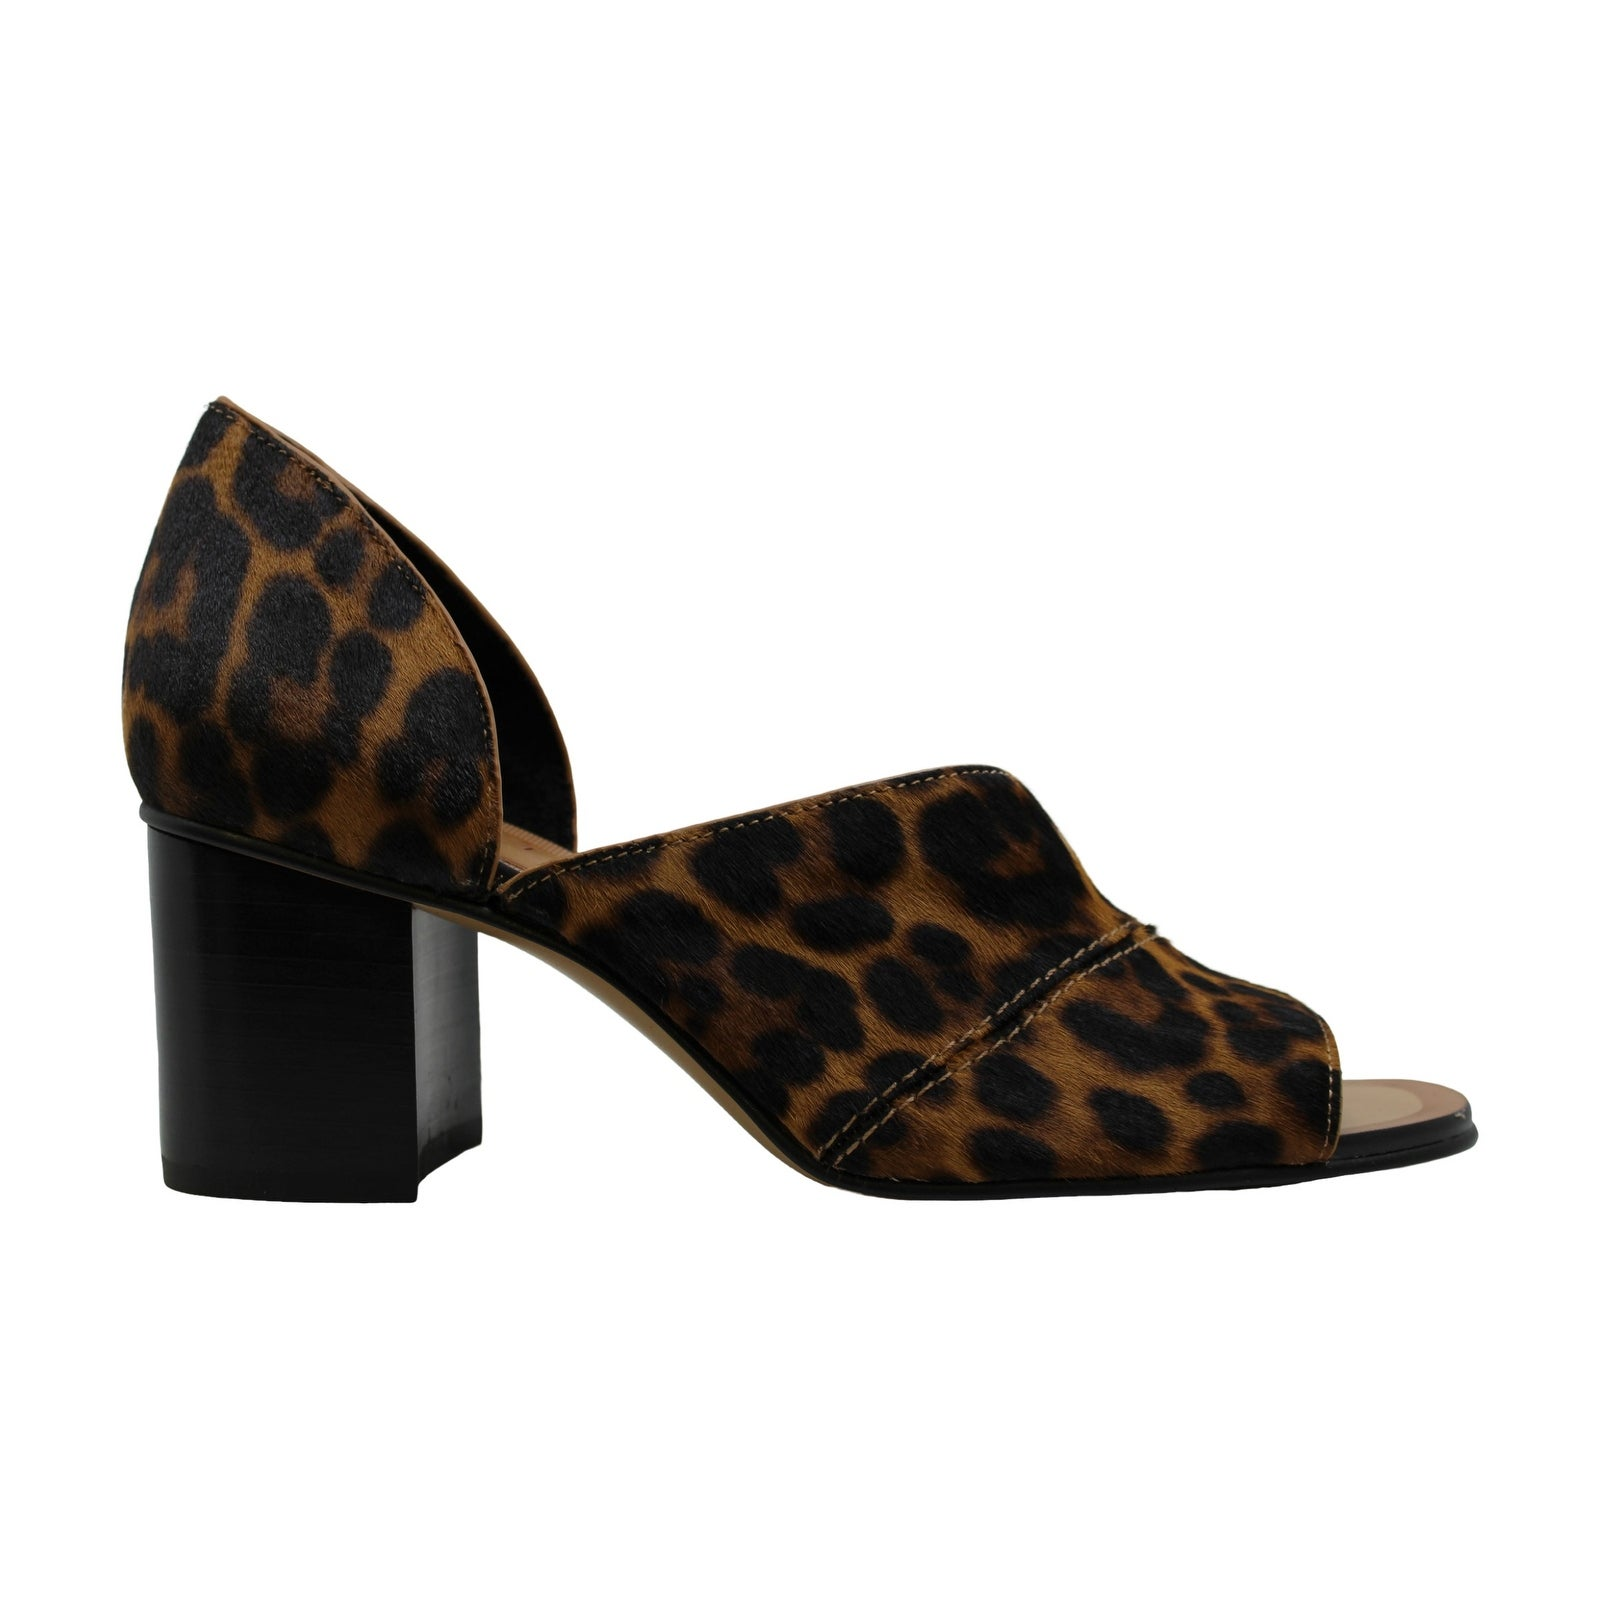 G by Guess Womens Perlina3 Open Toe Classic Pumps